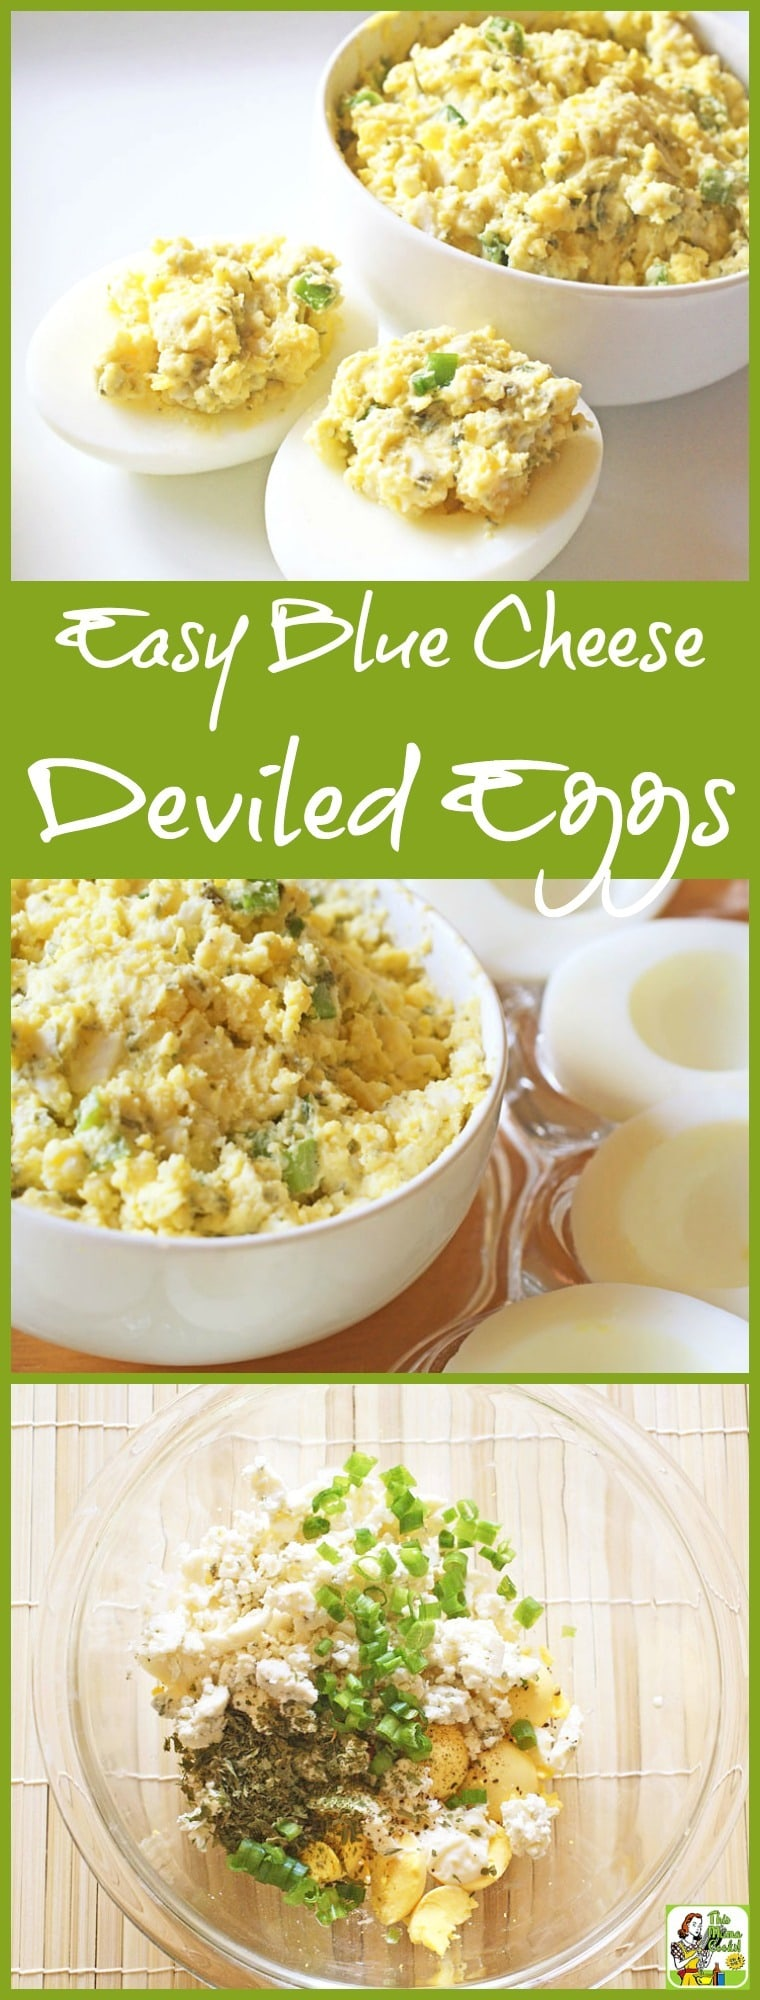 How to make Blue Cheese Deviled Eggs